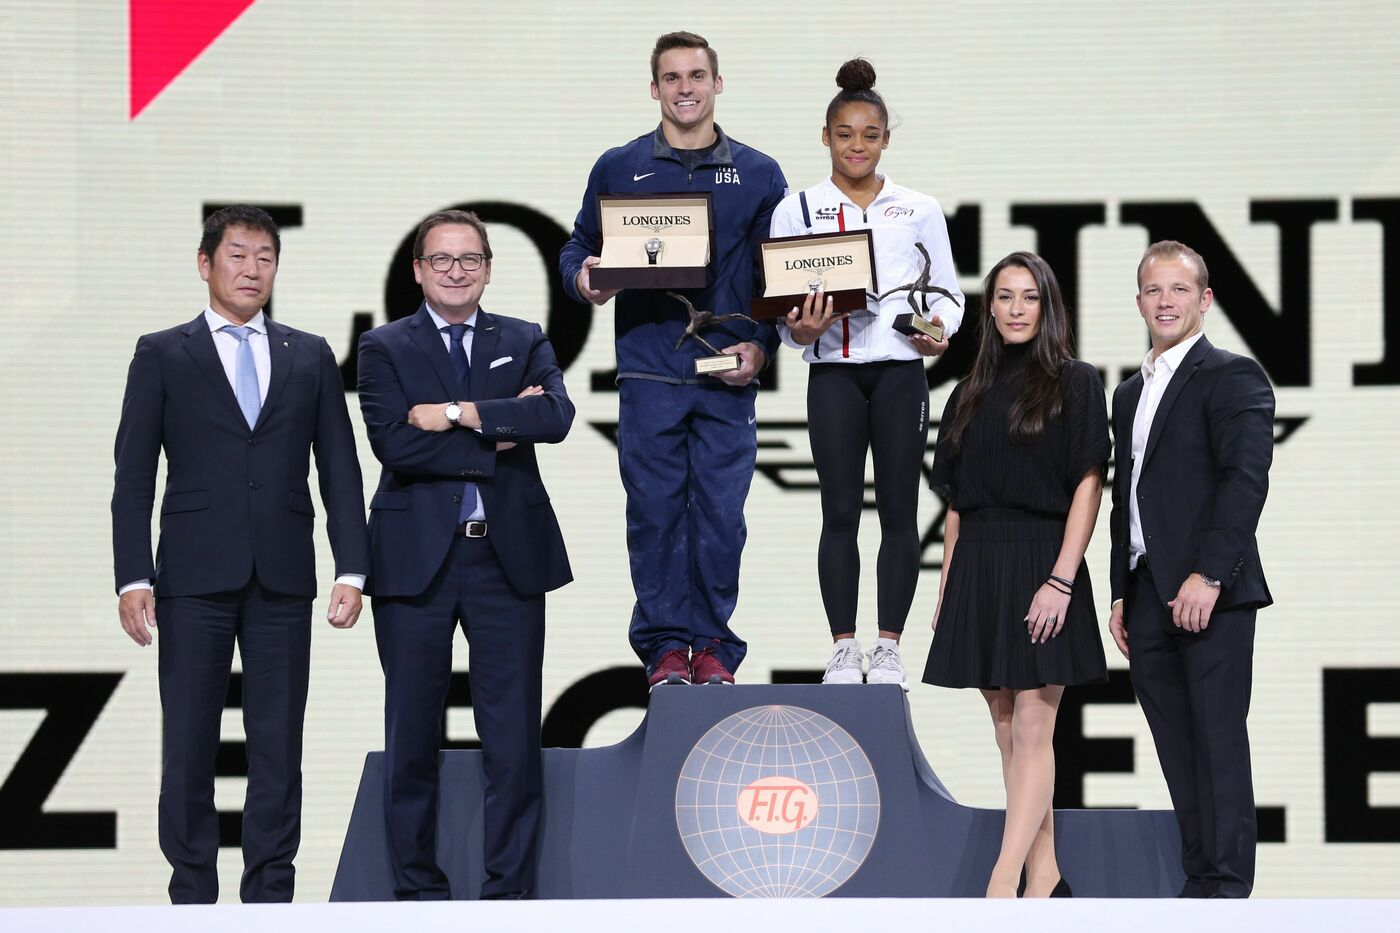 Longines Gymnastics Event: France's Melanie de Jesus dos Santos and USA's Samuel Mikulak were honored with the Longines Prize for Elegance at the 49th Artistic Gymnastics World Championships in Stuttgart 3